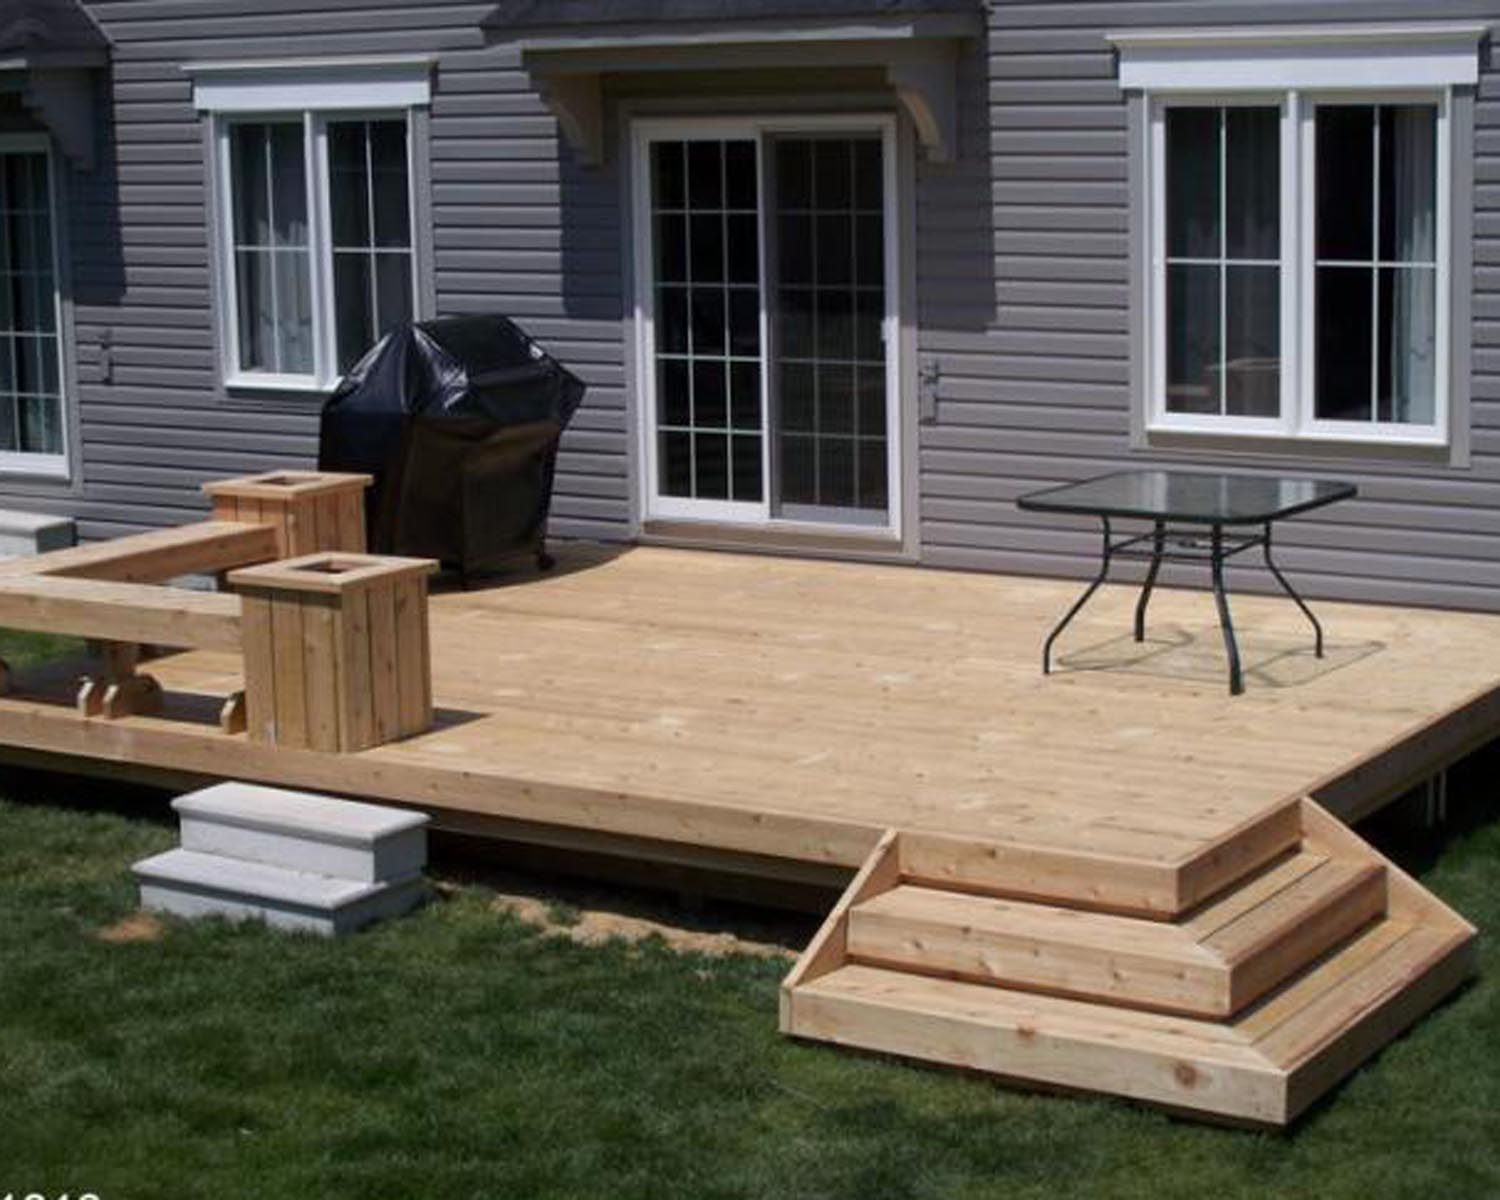 Ideas For Deck Designs deck design ideas Deck Ideas Be More When Deck Building Simple But Functional Designs Can